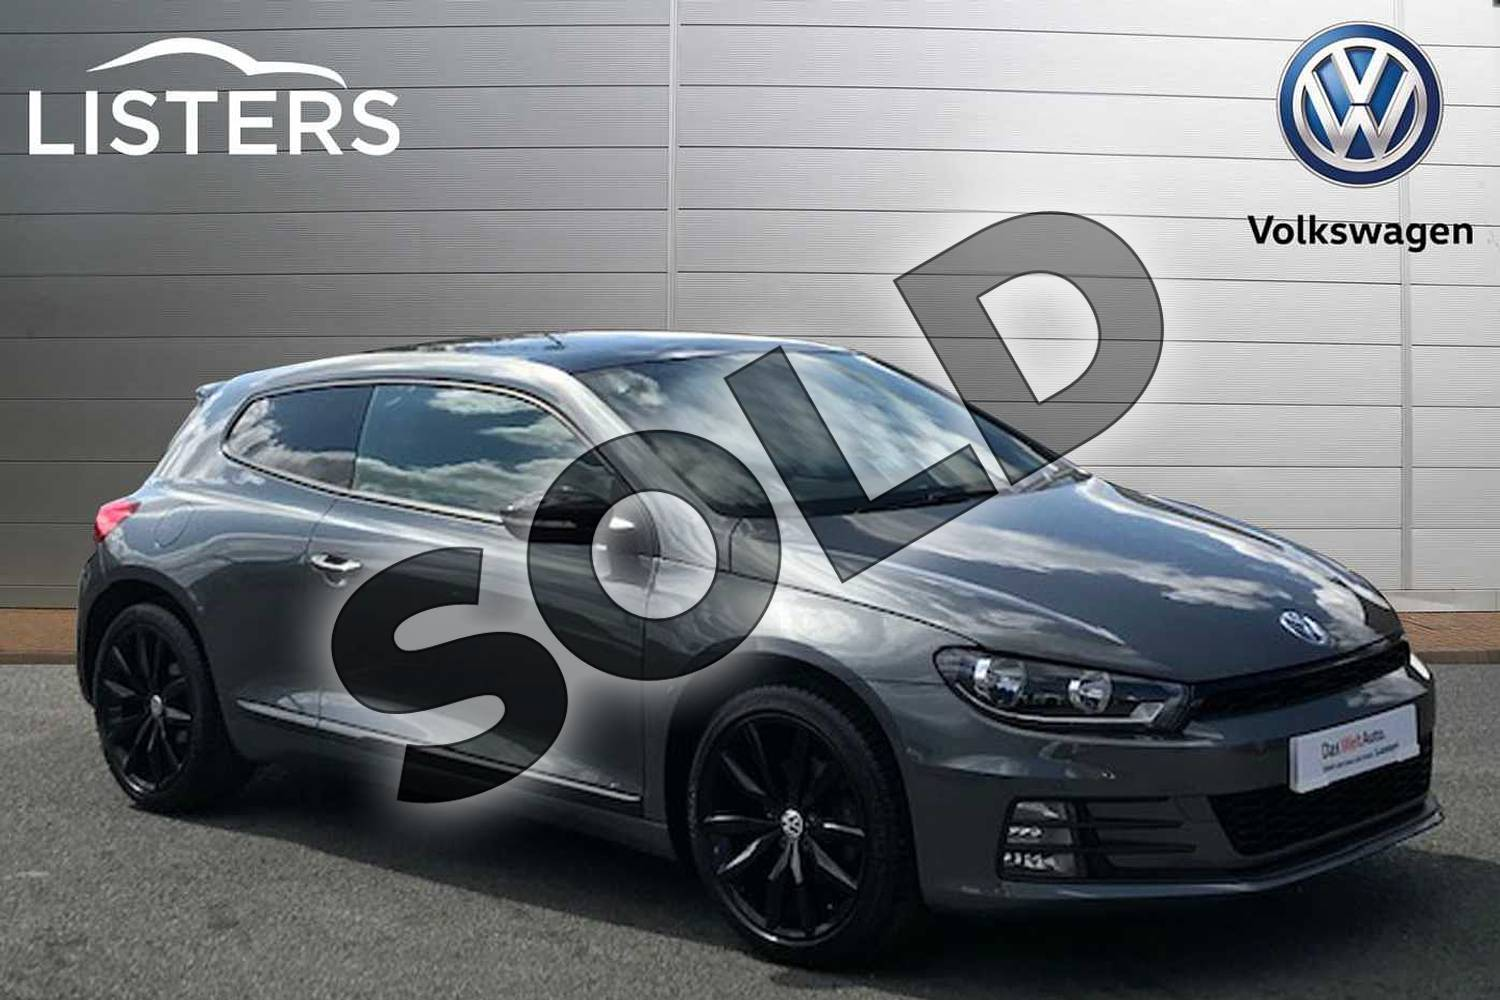 2016 Volkswagen Scirocco Diesel Coupe Diesel 2.0 TDI BlueMotion Tech GT Black Edition 3dr in Indium Grey at Listers Volkswagen Stratford-upon-Avon